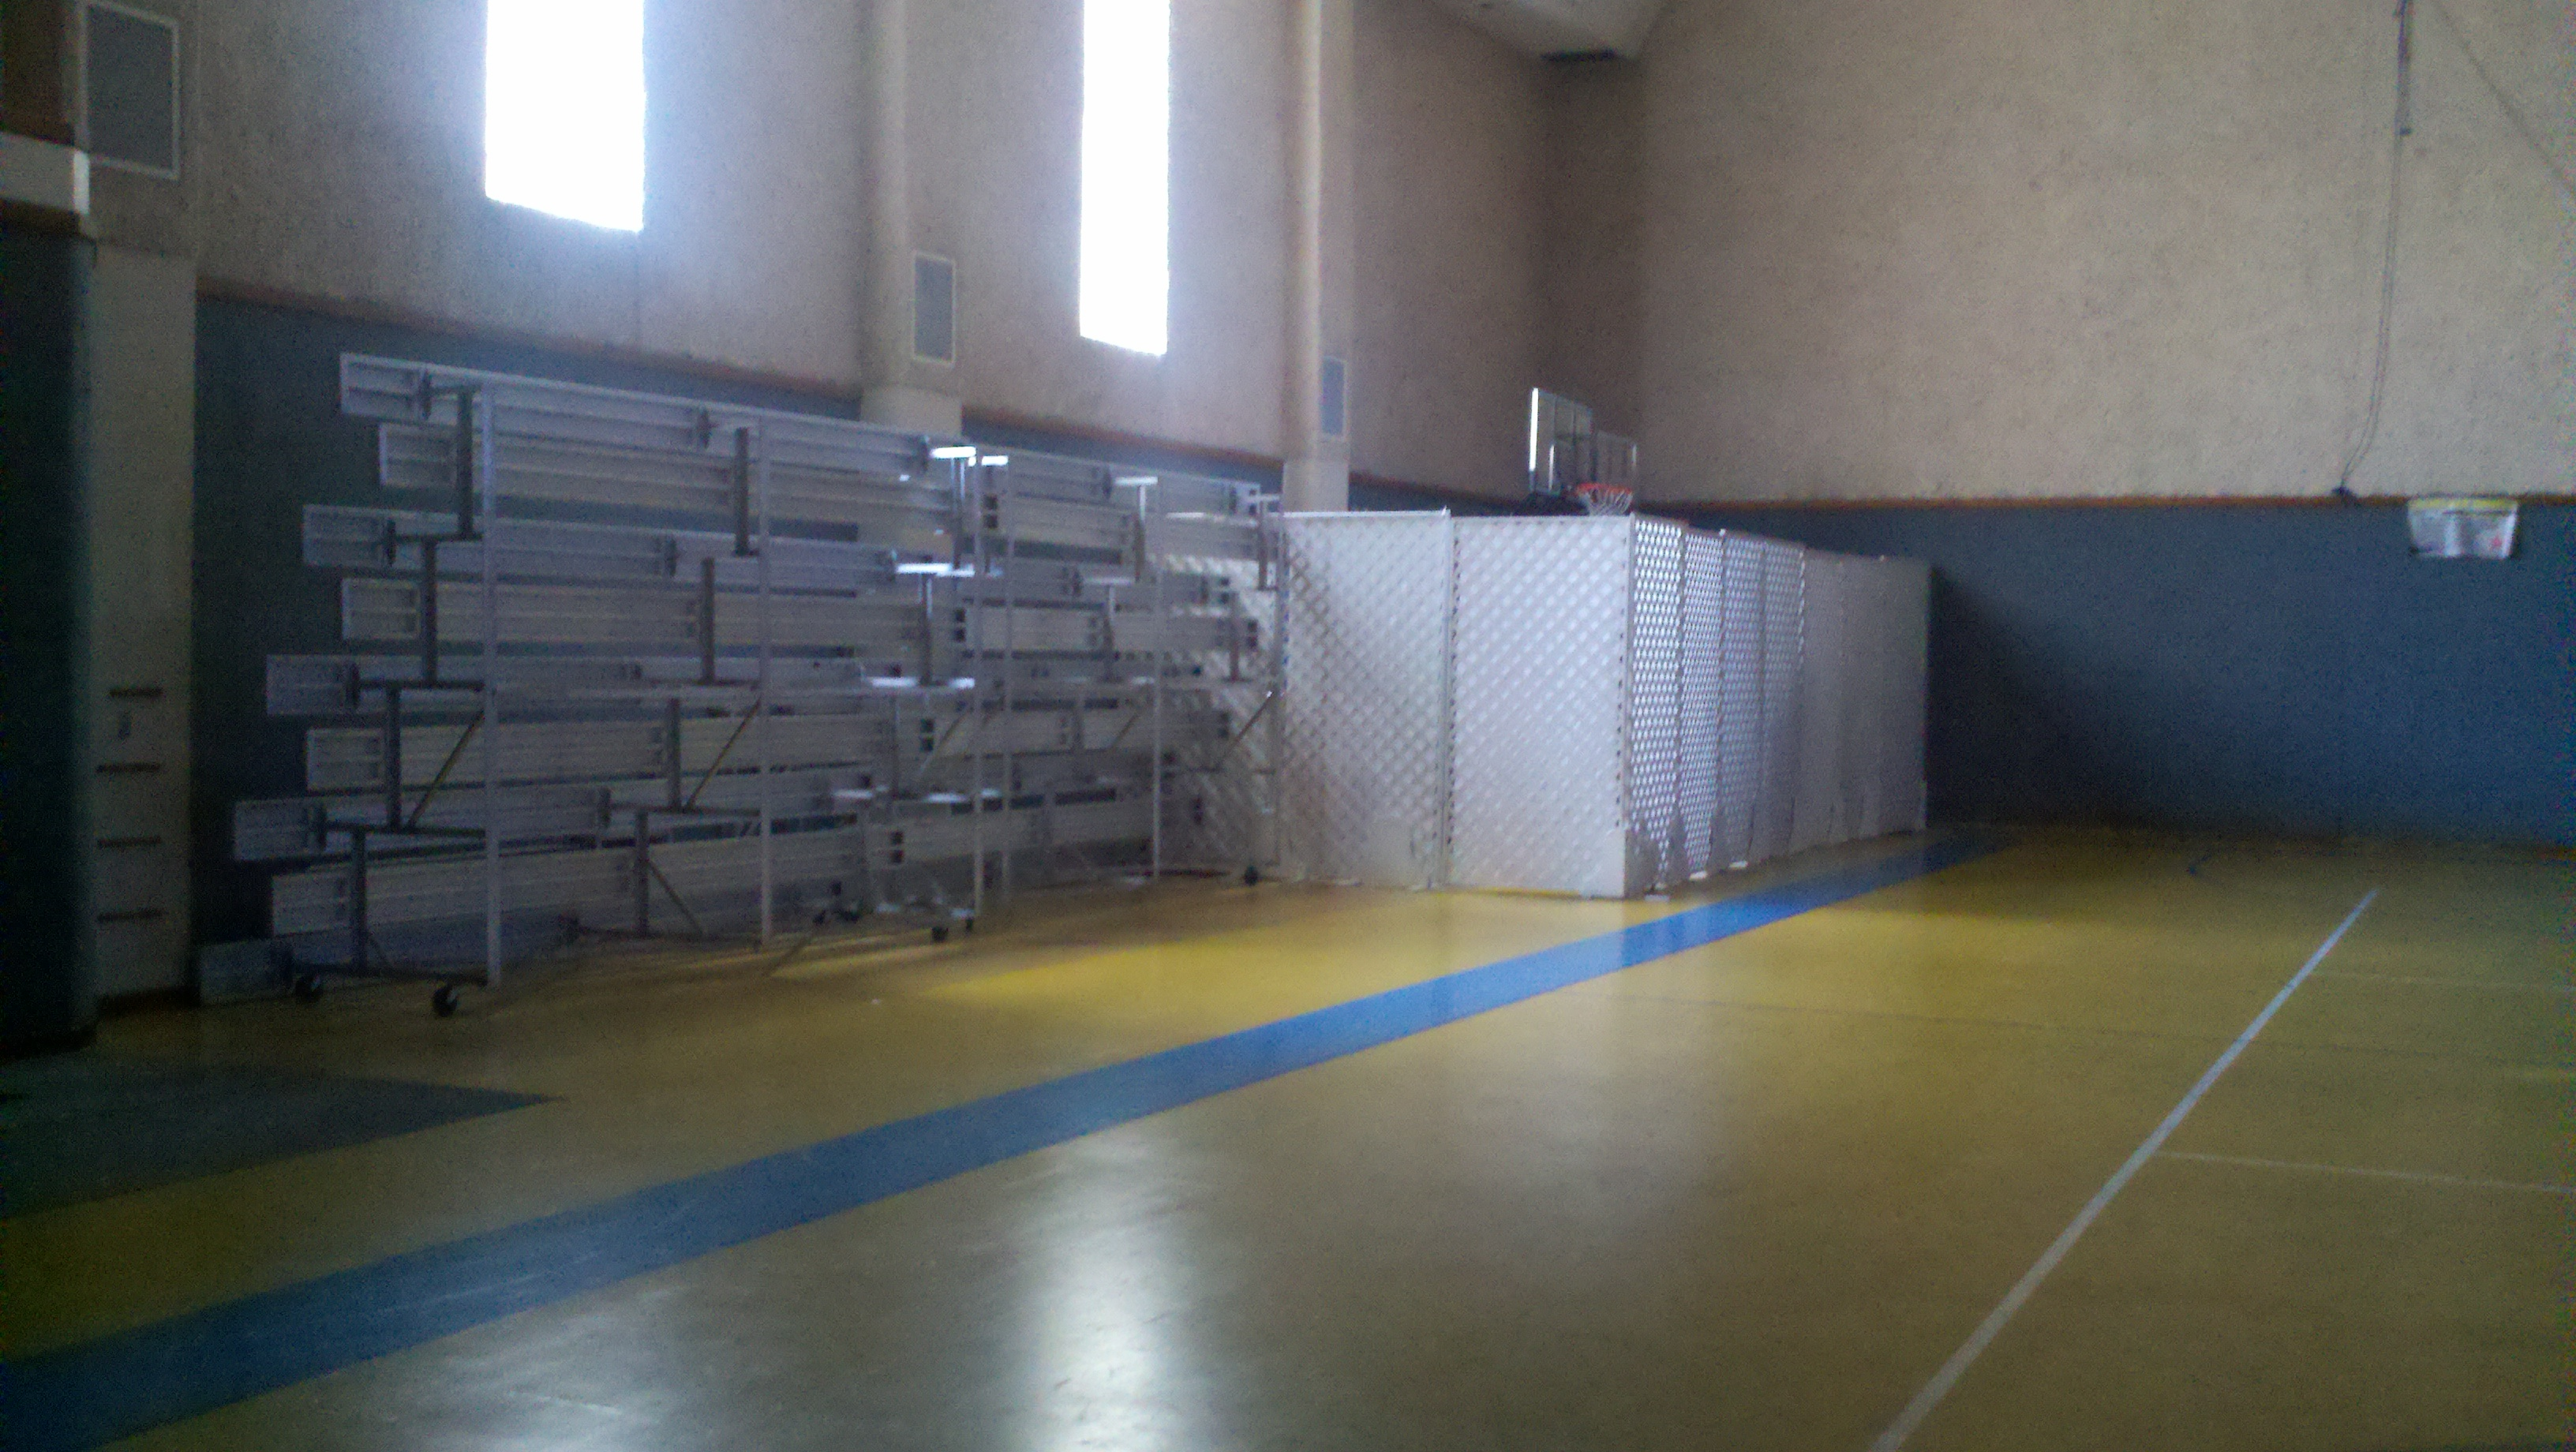 Metal bleachers folded against a wall next to fabric covered lattice shielding basketball equipment